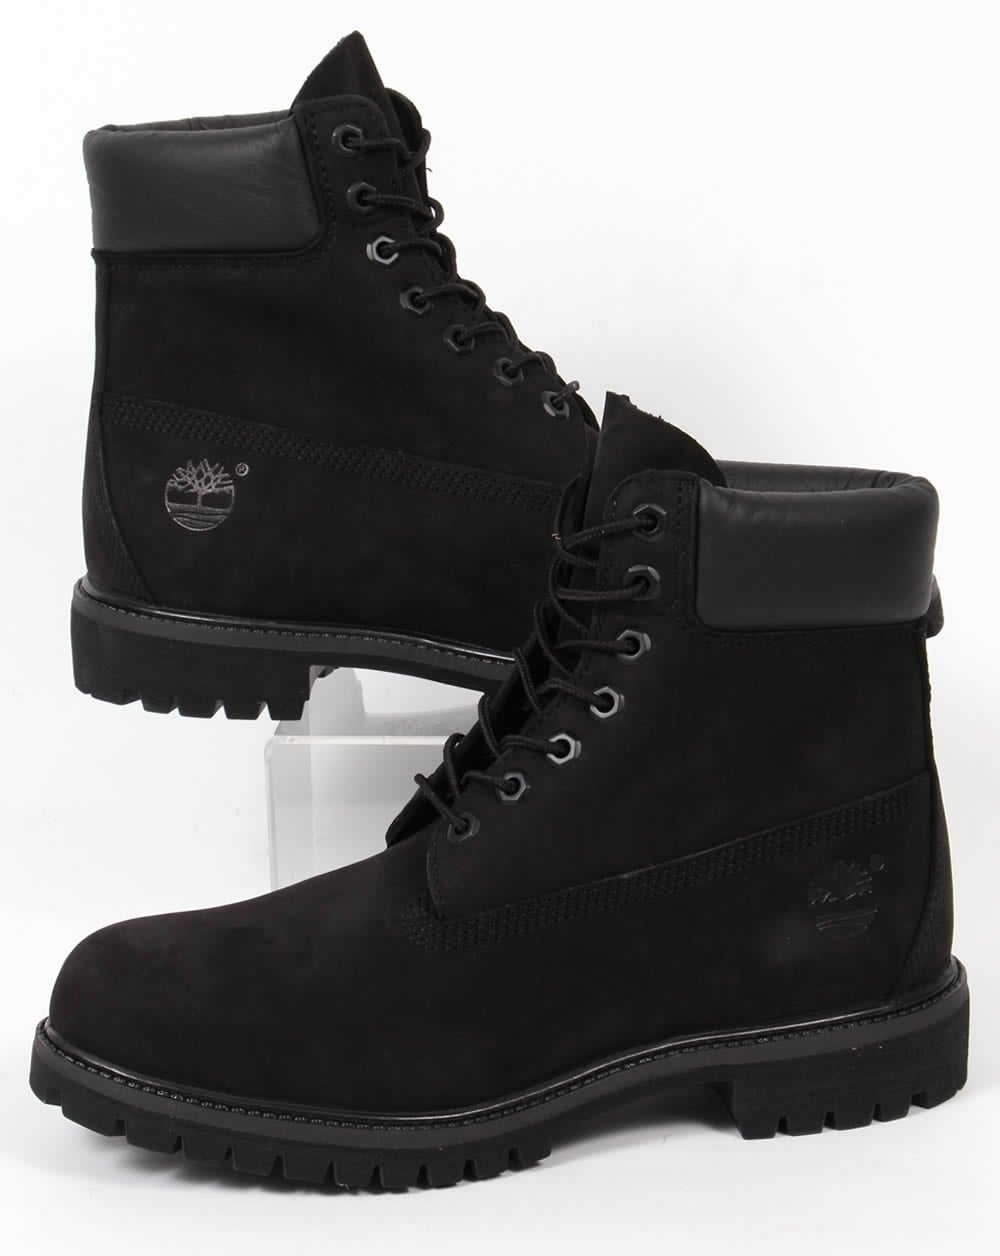 faf0c96bbd2 Timberland Icon 6 Inch Premium Boots Black Nubuck